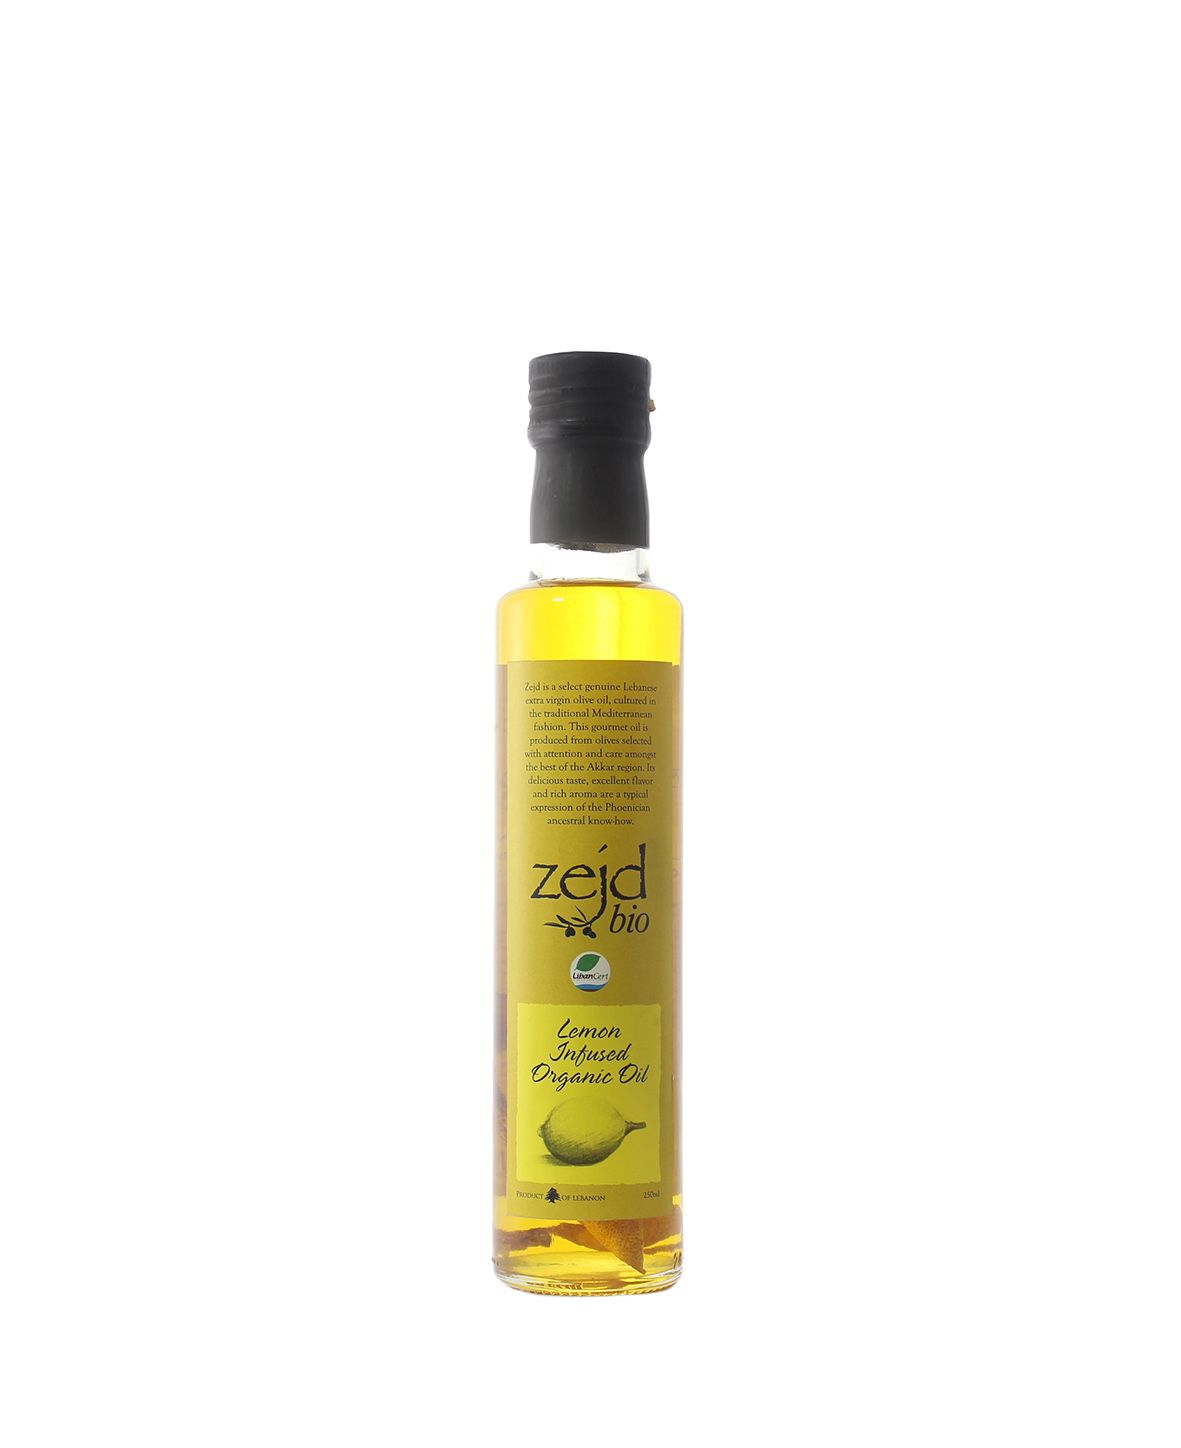 House of Zejd Lemon Infused Oil, 250mL